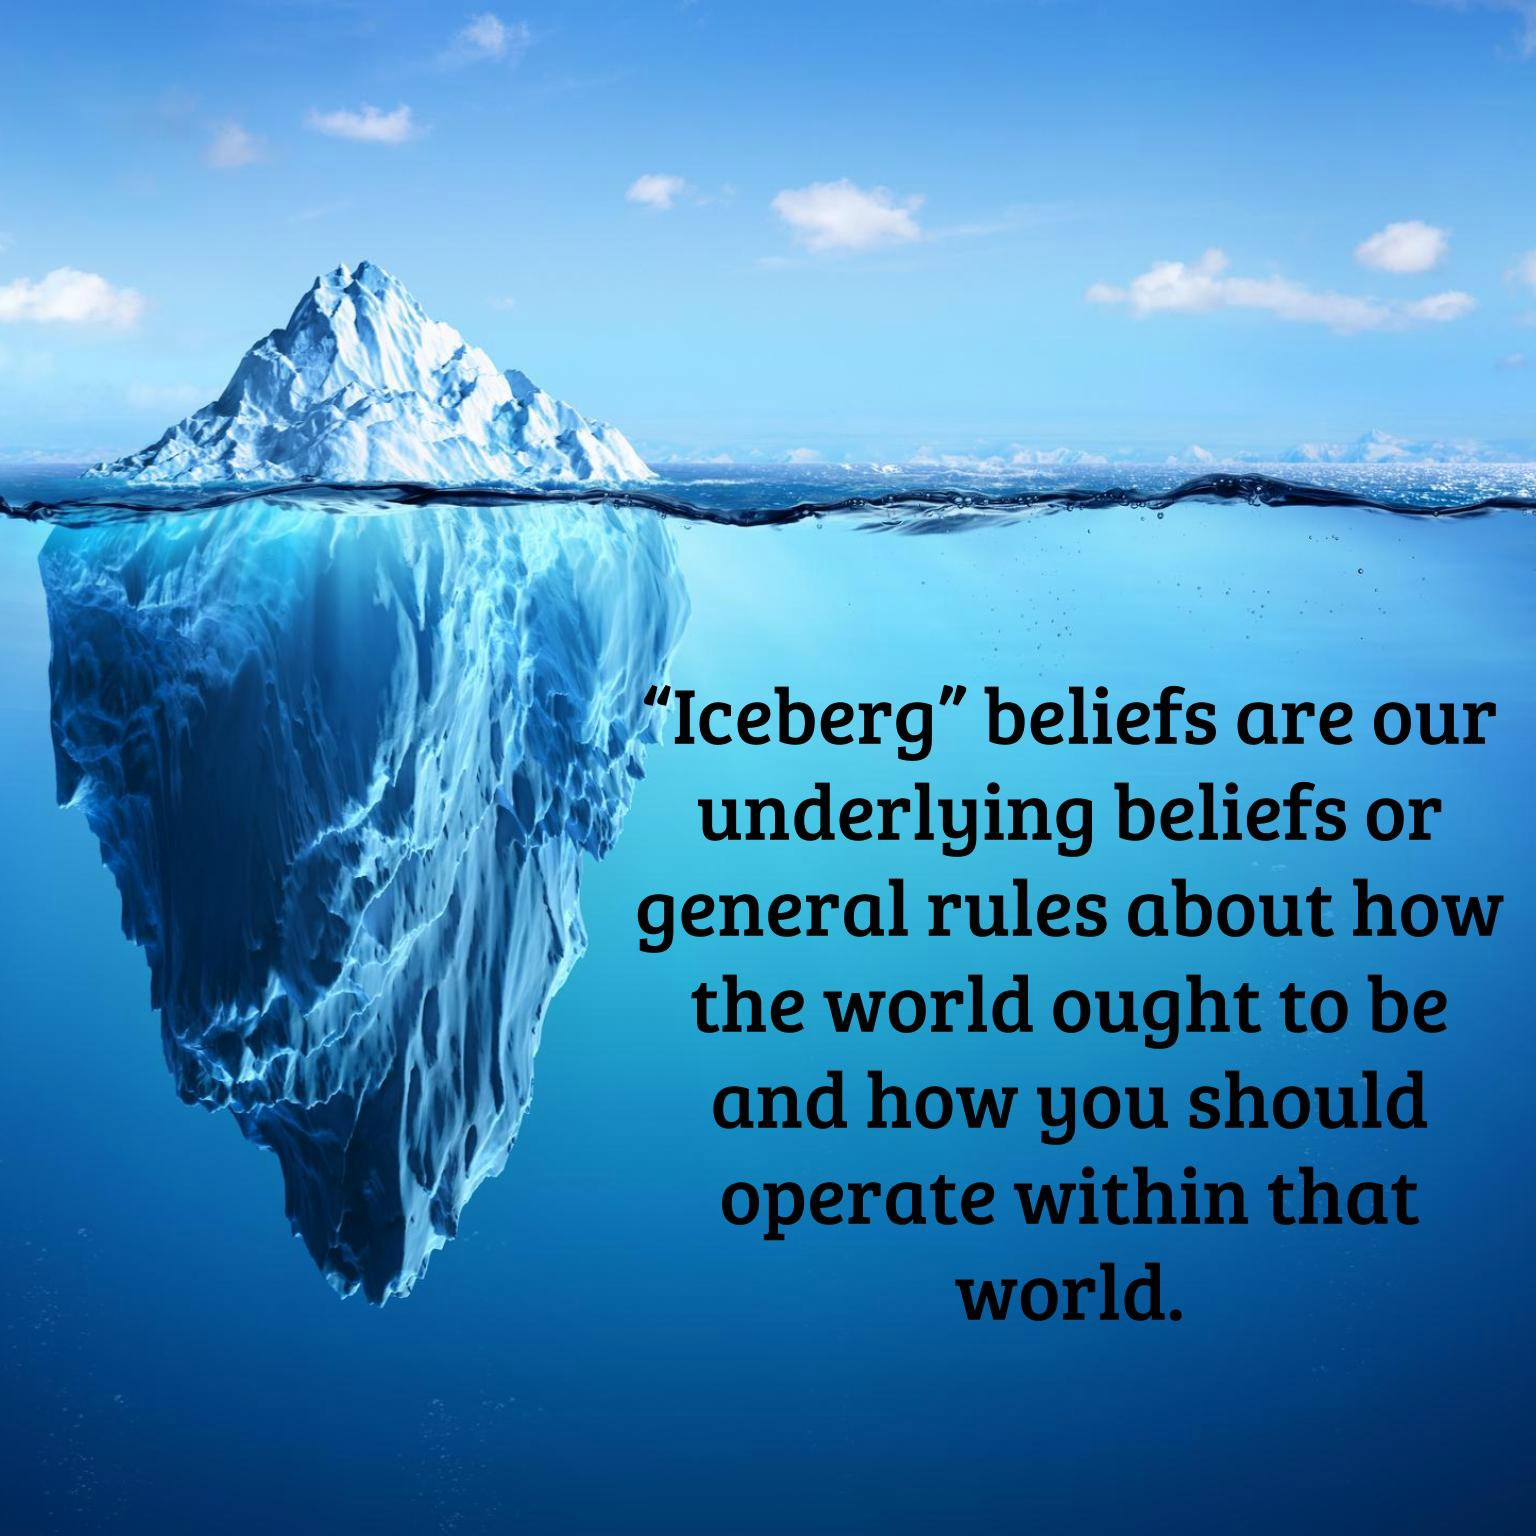 """Iceberg"" beliefs are our underlying beliefs or general rules about how the world ought to be and how you should operate within that world."